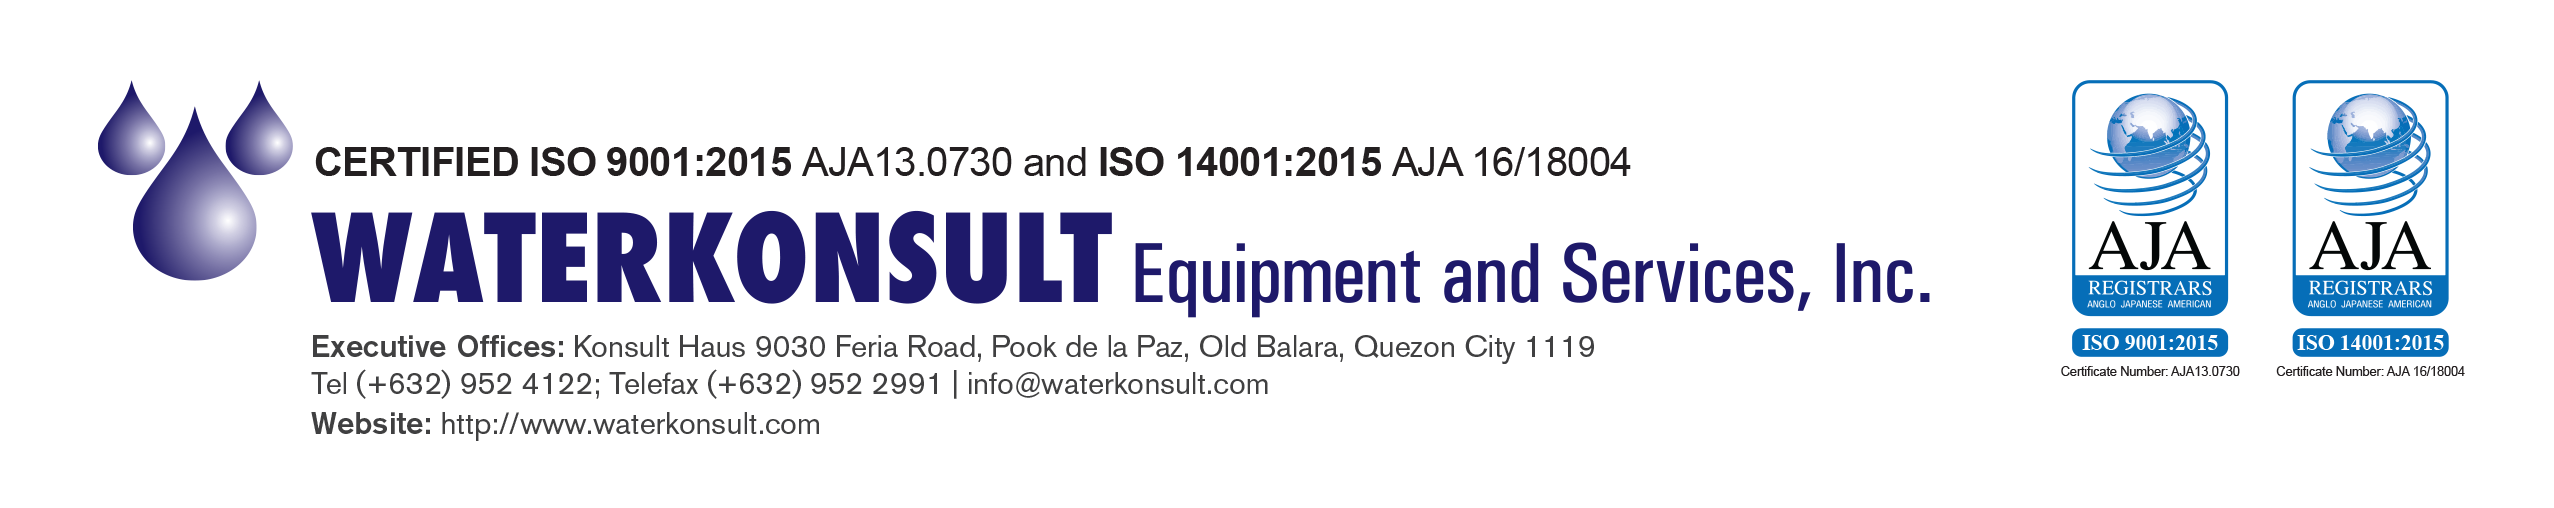 Waterkonsult Equipment and Services, Inc.